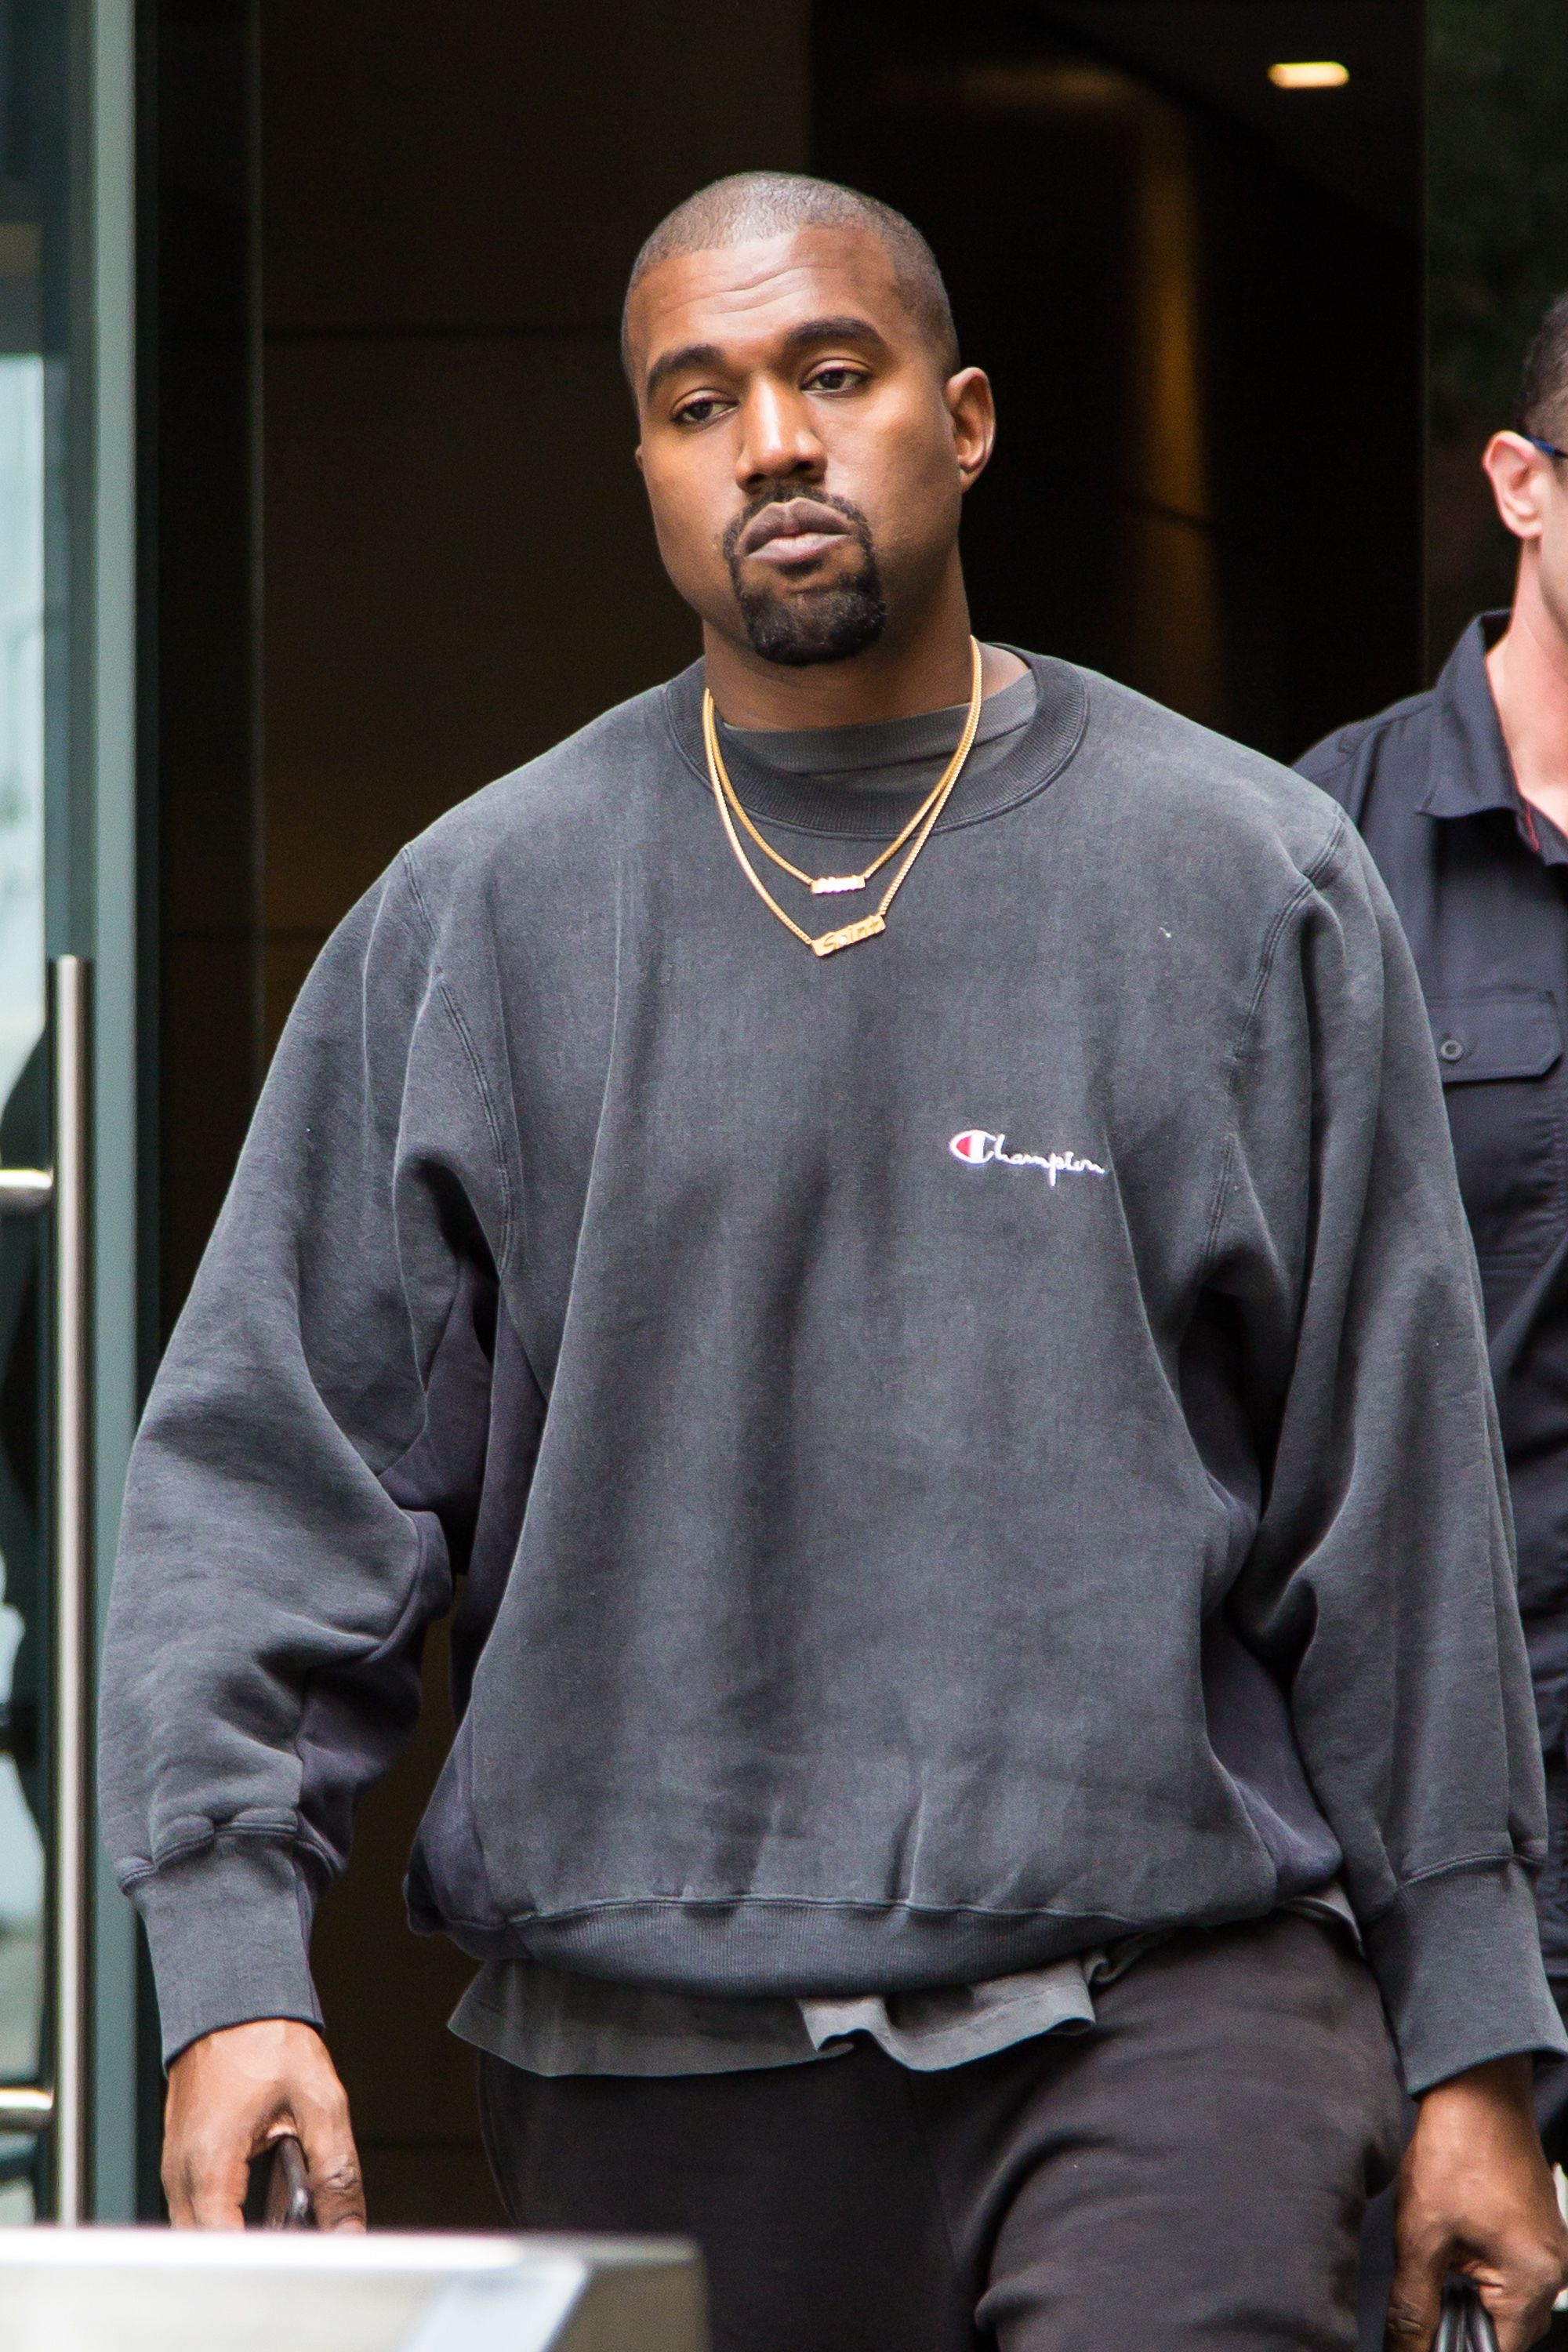 Kanye West in the street